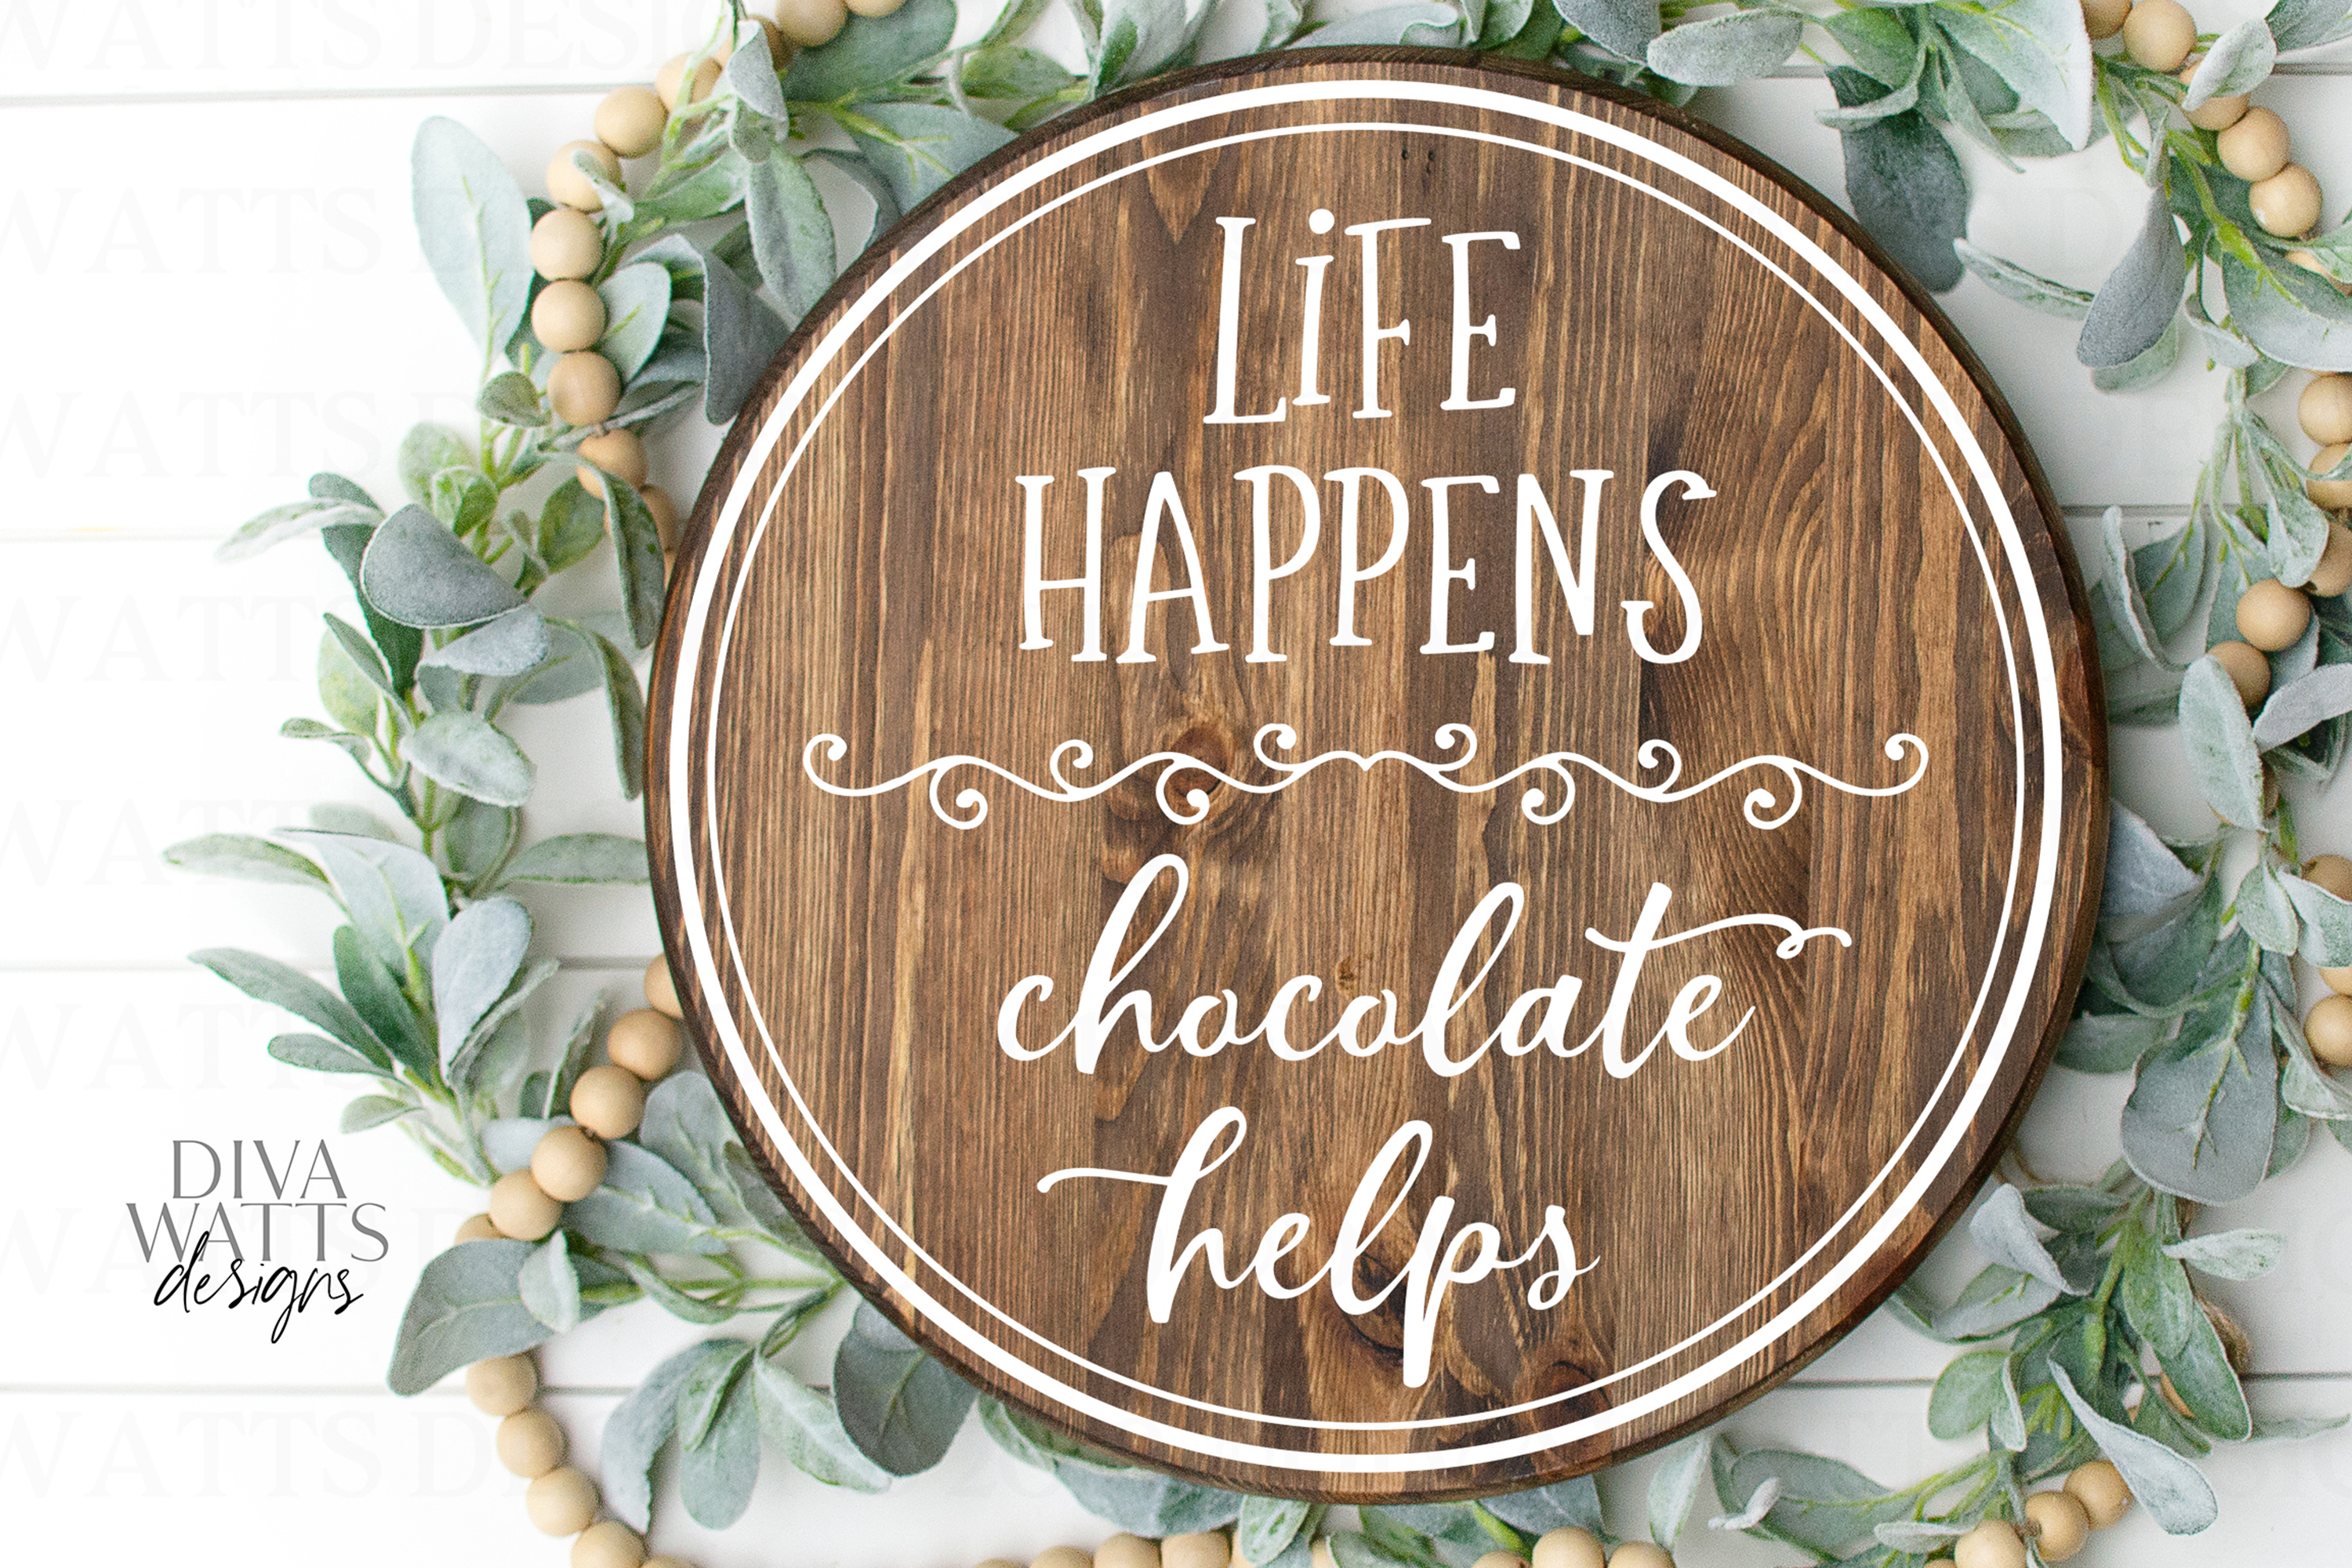 Life Happens Chocolate Helps - Kitchen - Sign - Shirt - SVG example image 2